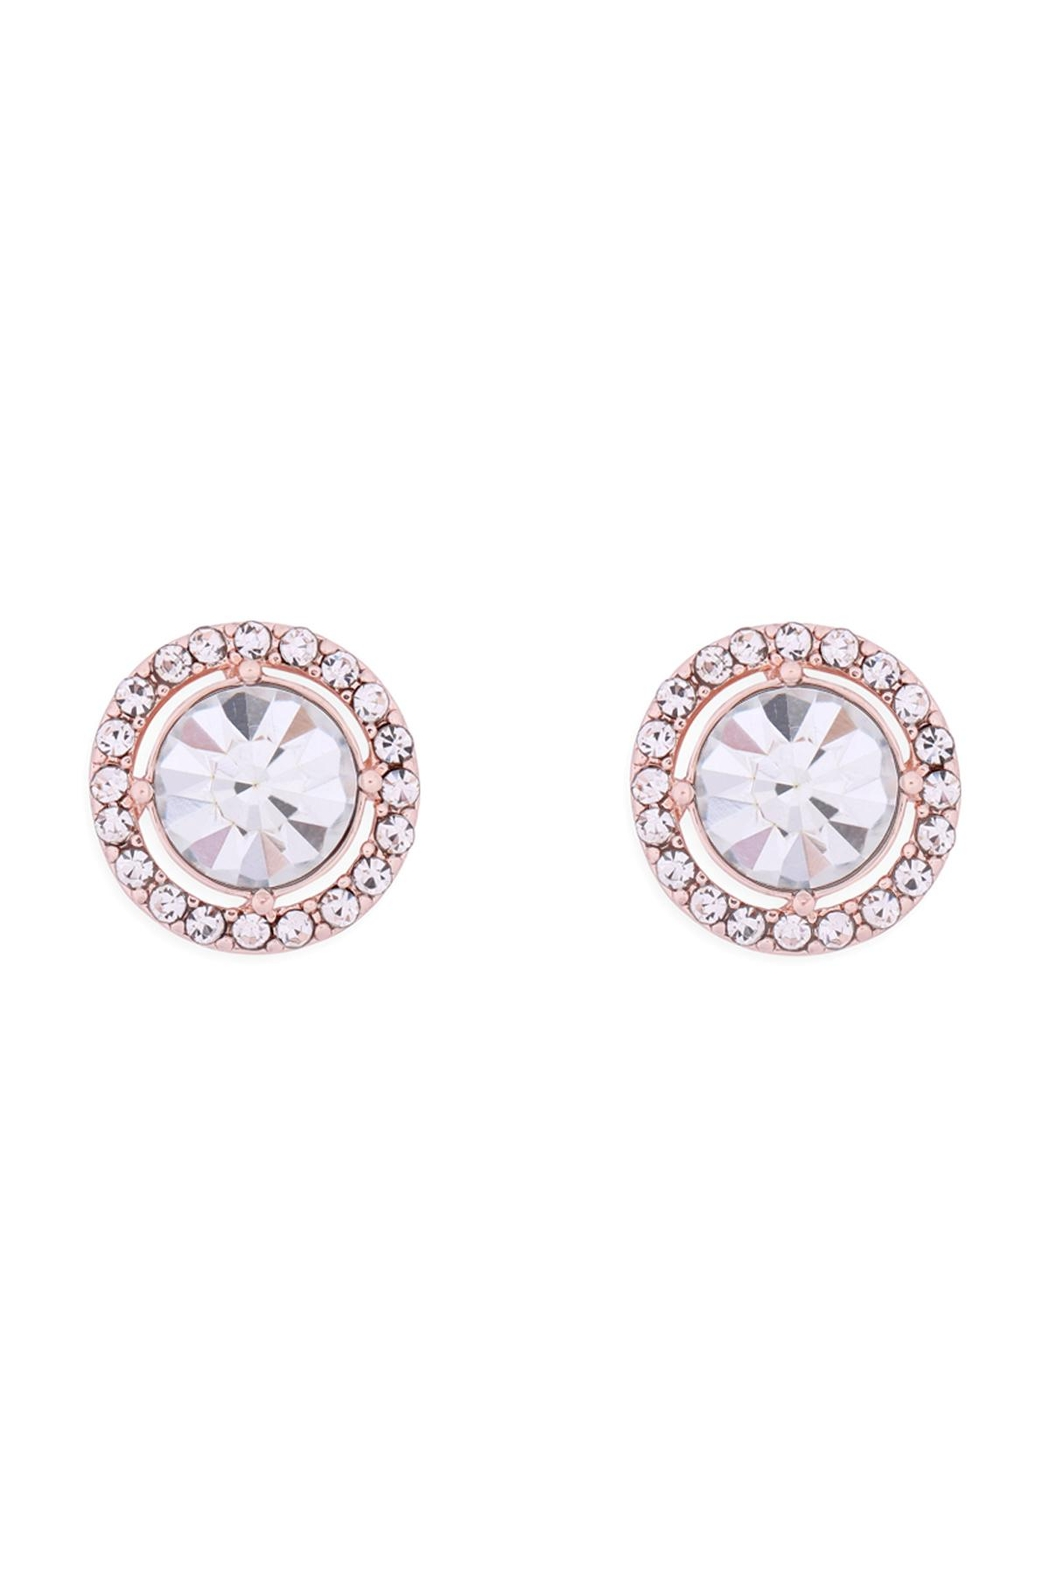 Riah Fashion Cubic-Zirconia-Round-Halo-Stud-Earrings - Front Cropped Image